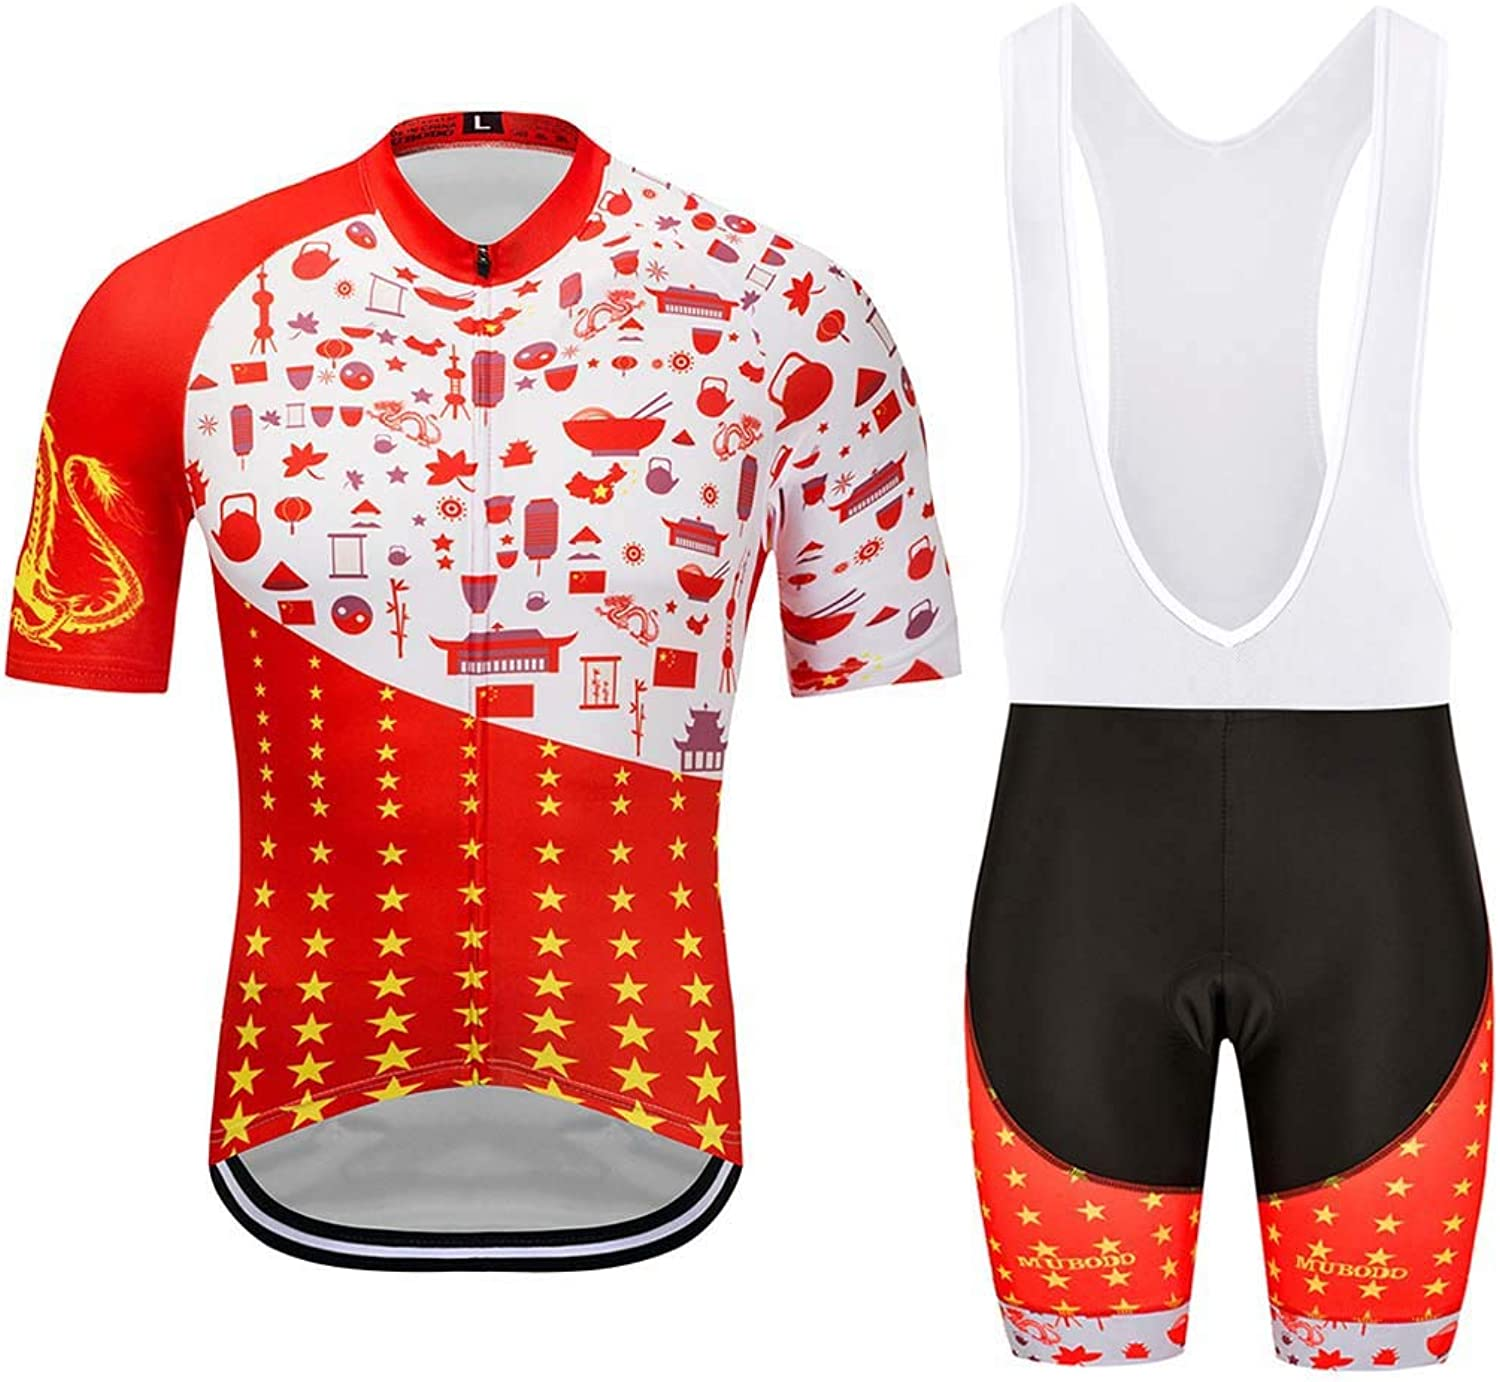 Jersey Men, Cycling Shorts Women Padded Quick Dry Waterproof Fitness Clothes, for Road Bicycle MTB Outdoor Sports,XS